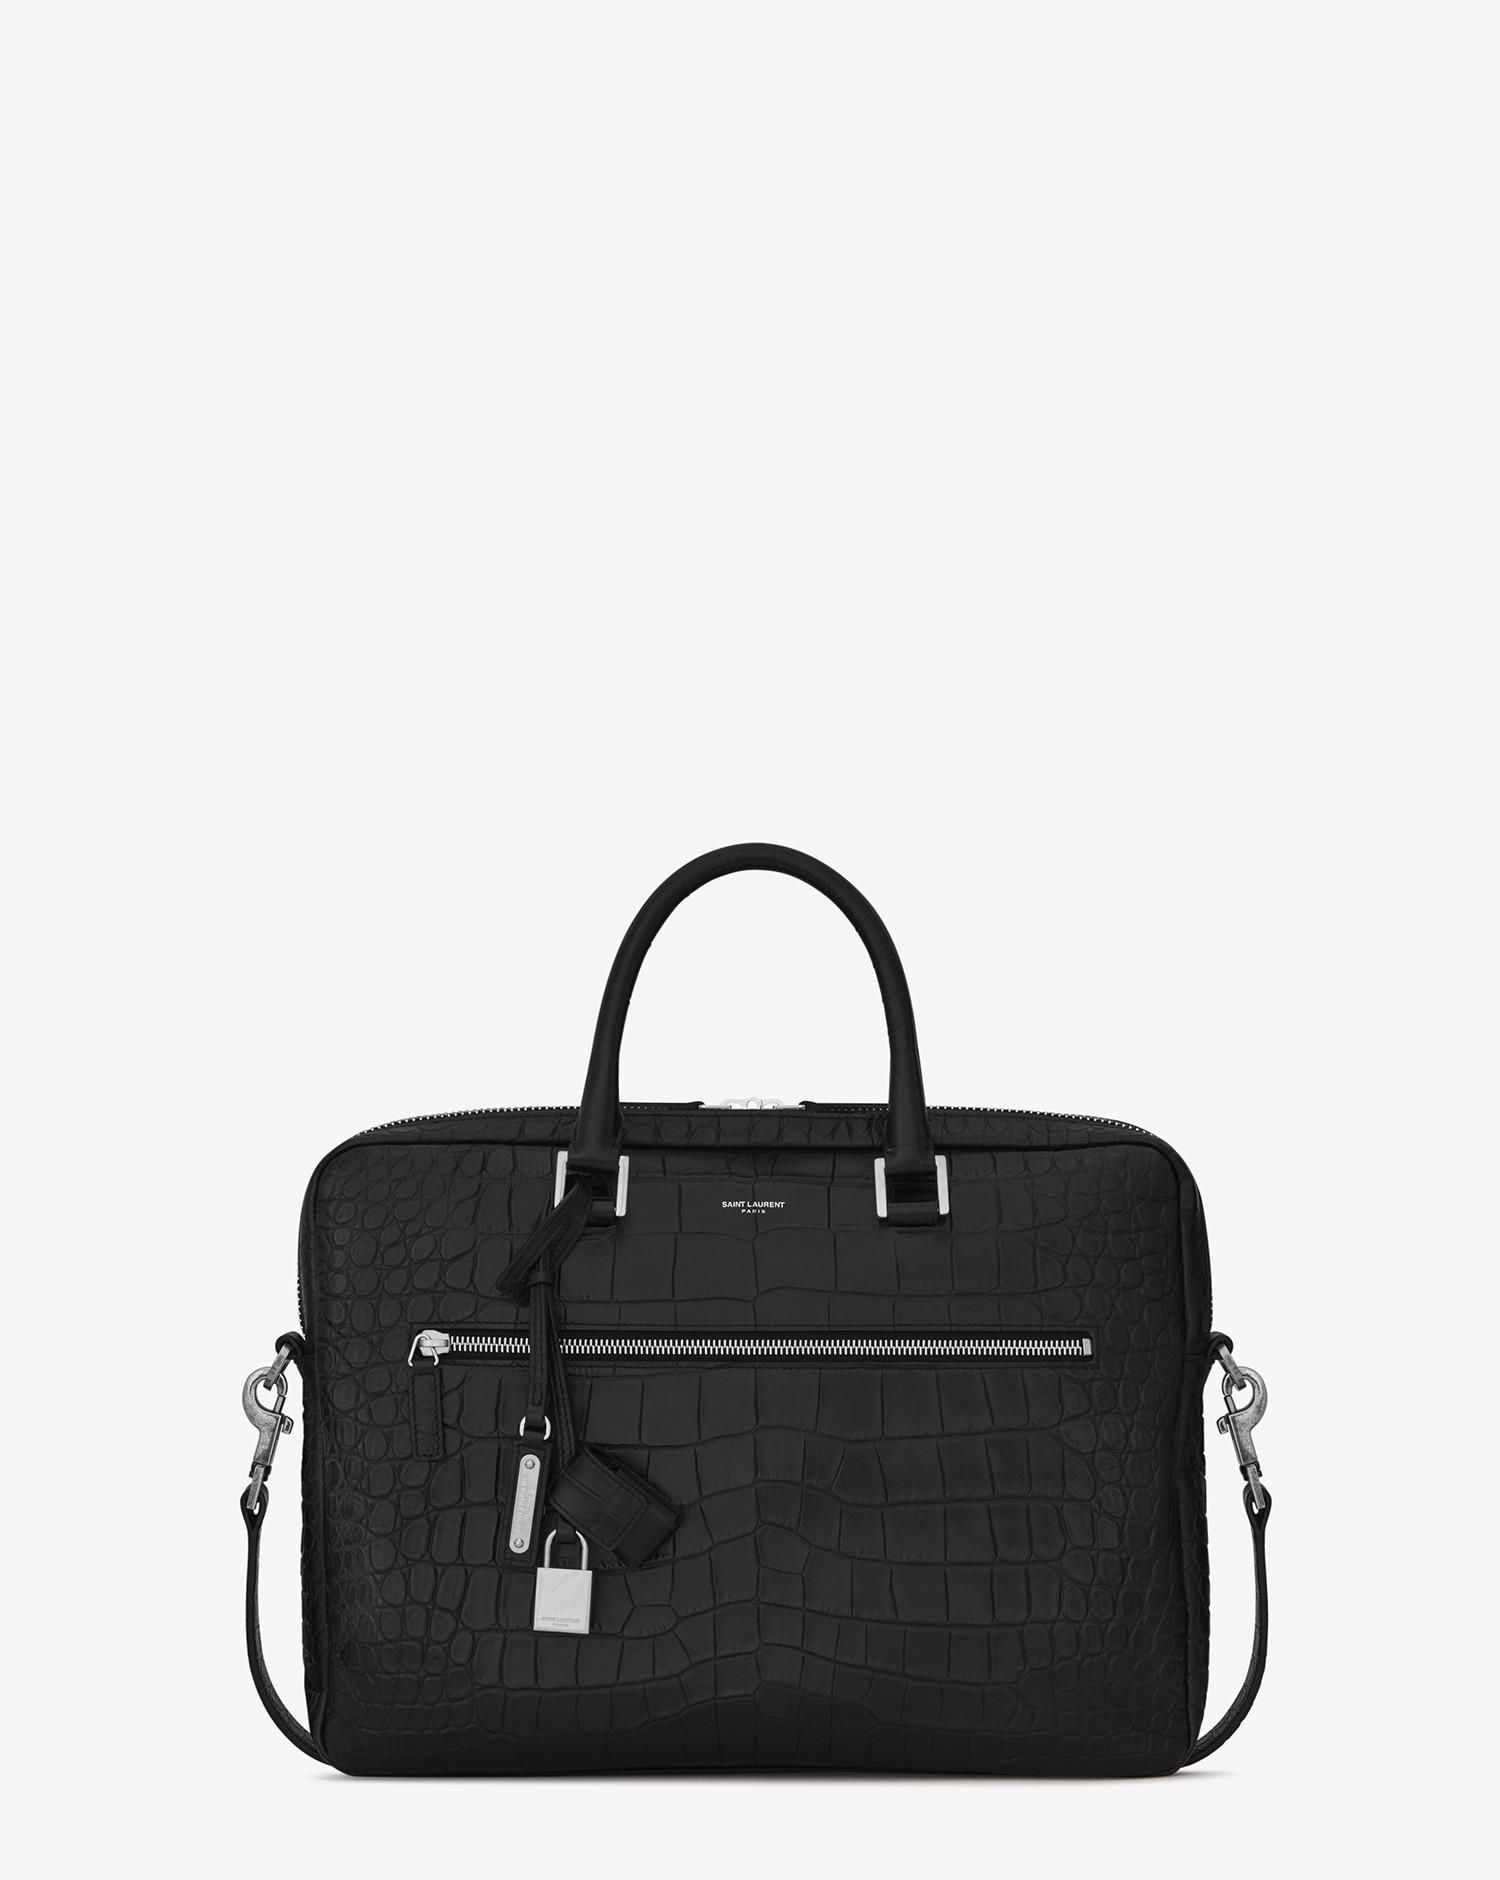 98710ec93ef Saint Laurent - Black Sac De Jour Large Briefcase In Crocodile Embossed  Leather for Men - Lyst